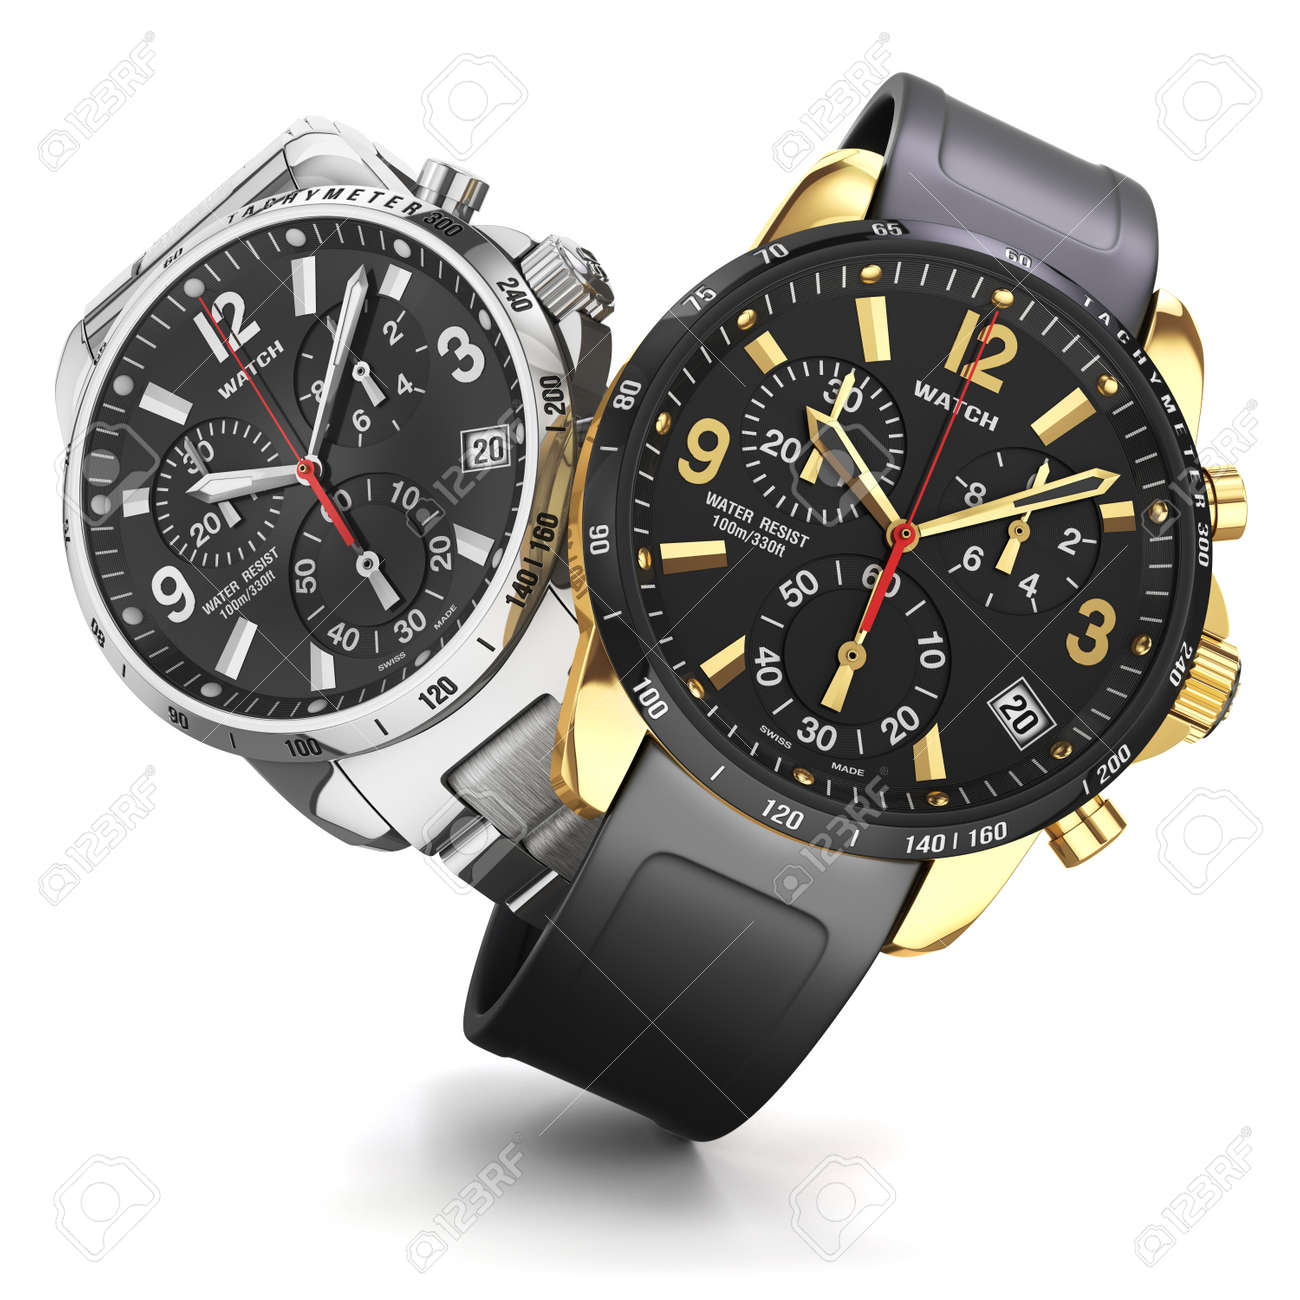 tracker wristband diving rate and waterproof watch gnafilniqil watches swimming meters bracelet grey katelvadi black smart heart fitness dp deepth monitoring